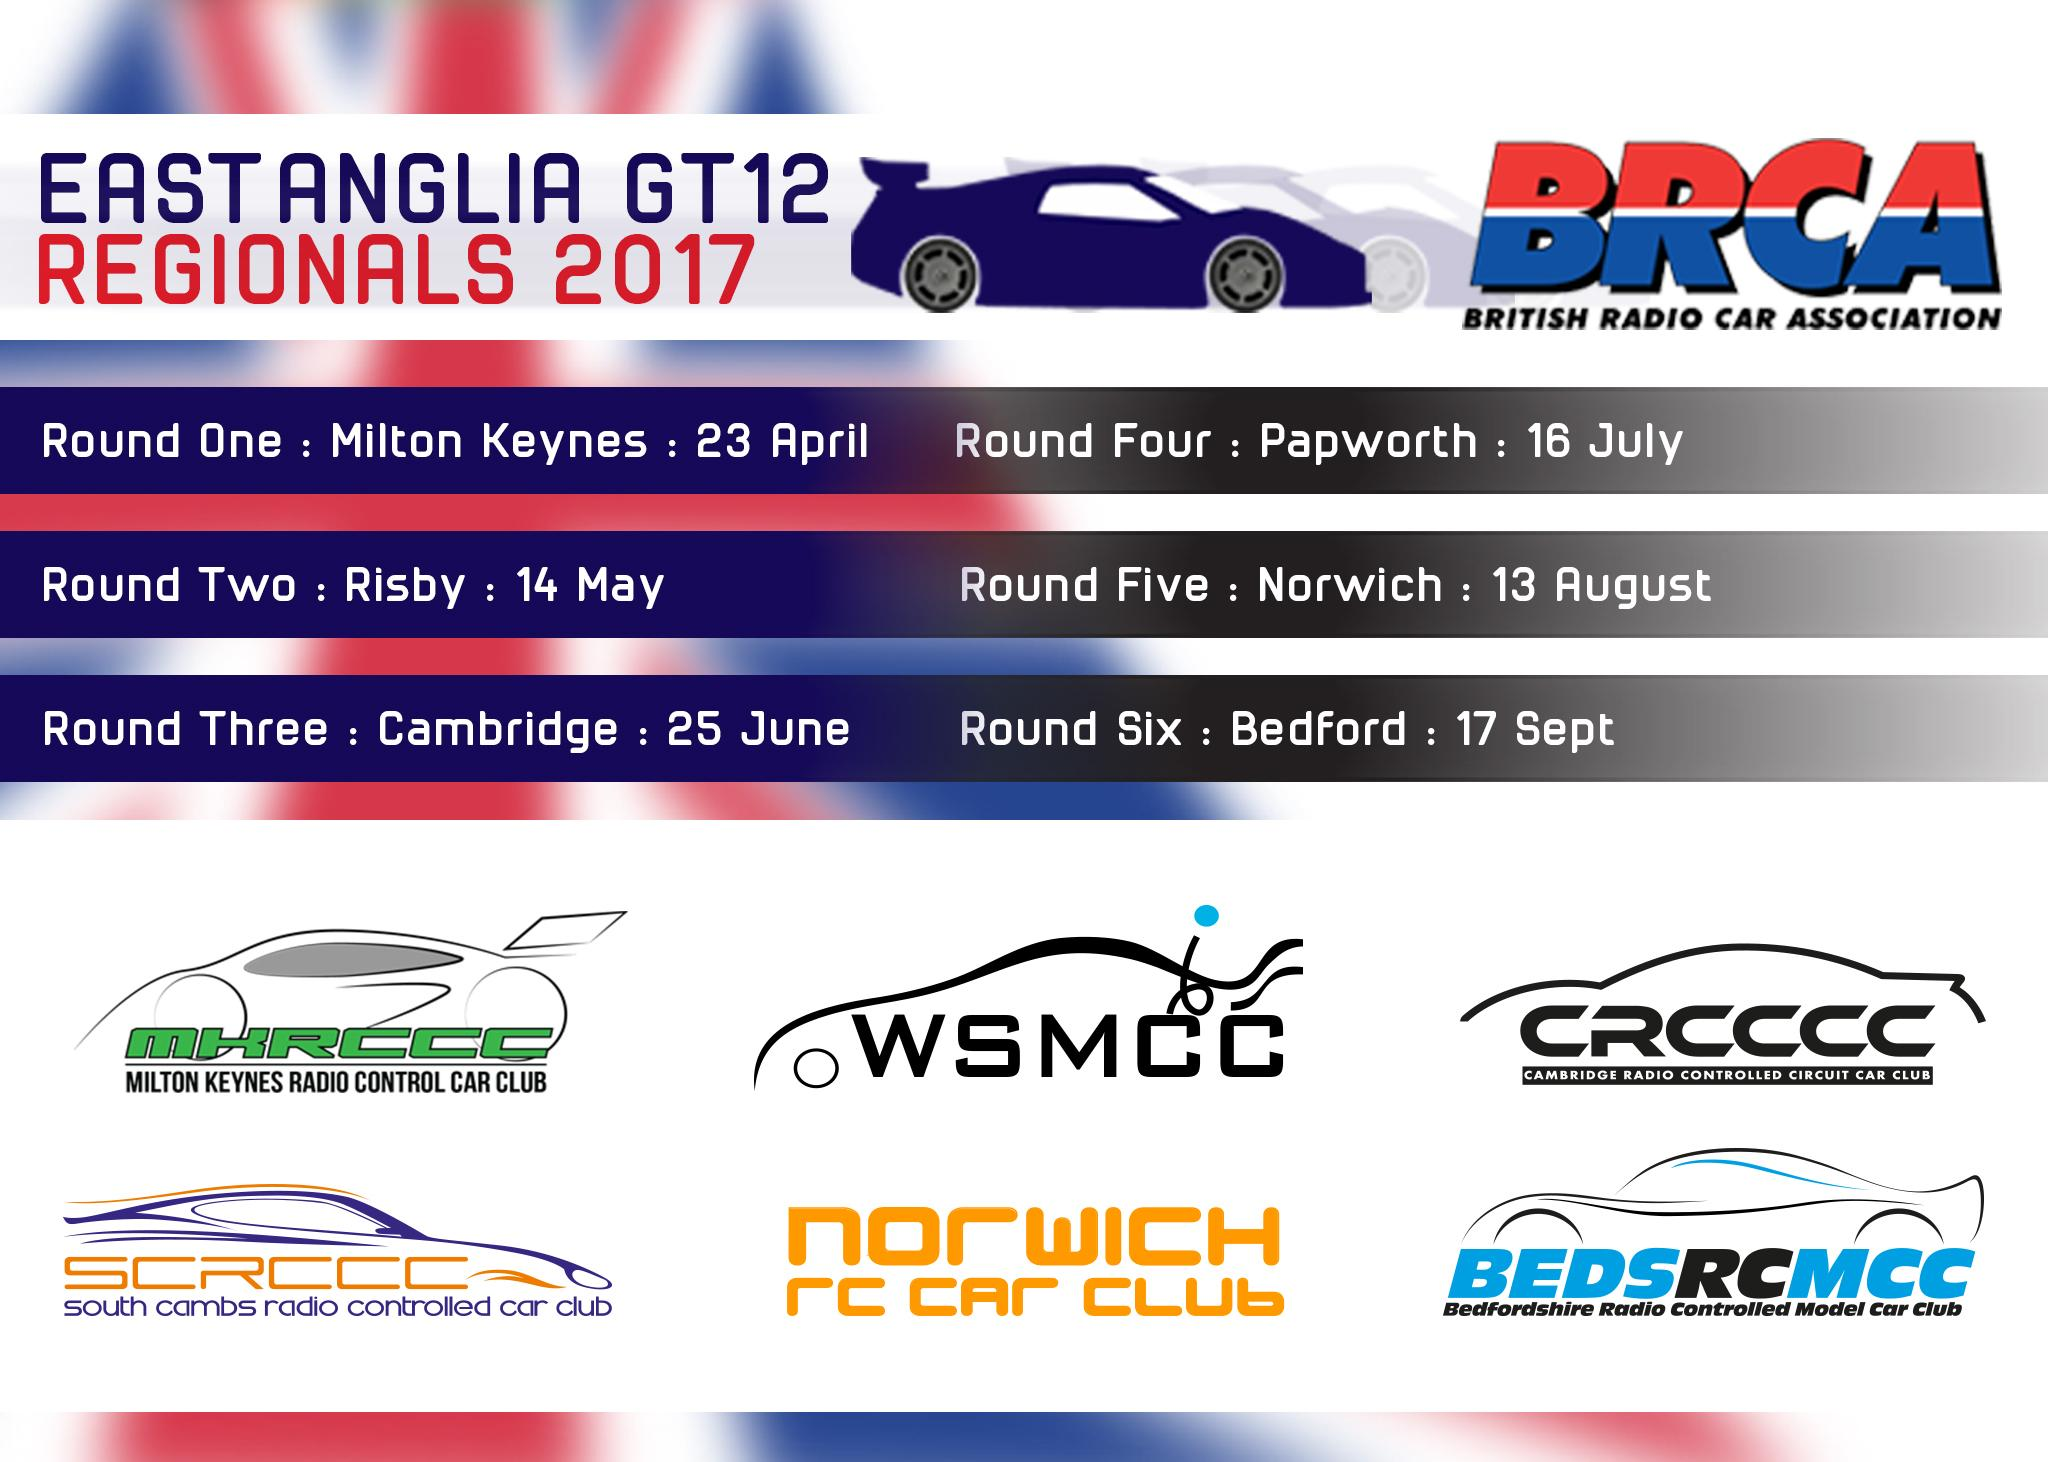 EAST ANGLIA GT12 REGIONALS 2017 BRCA SMALL v1